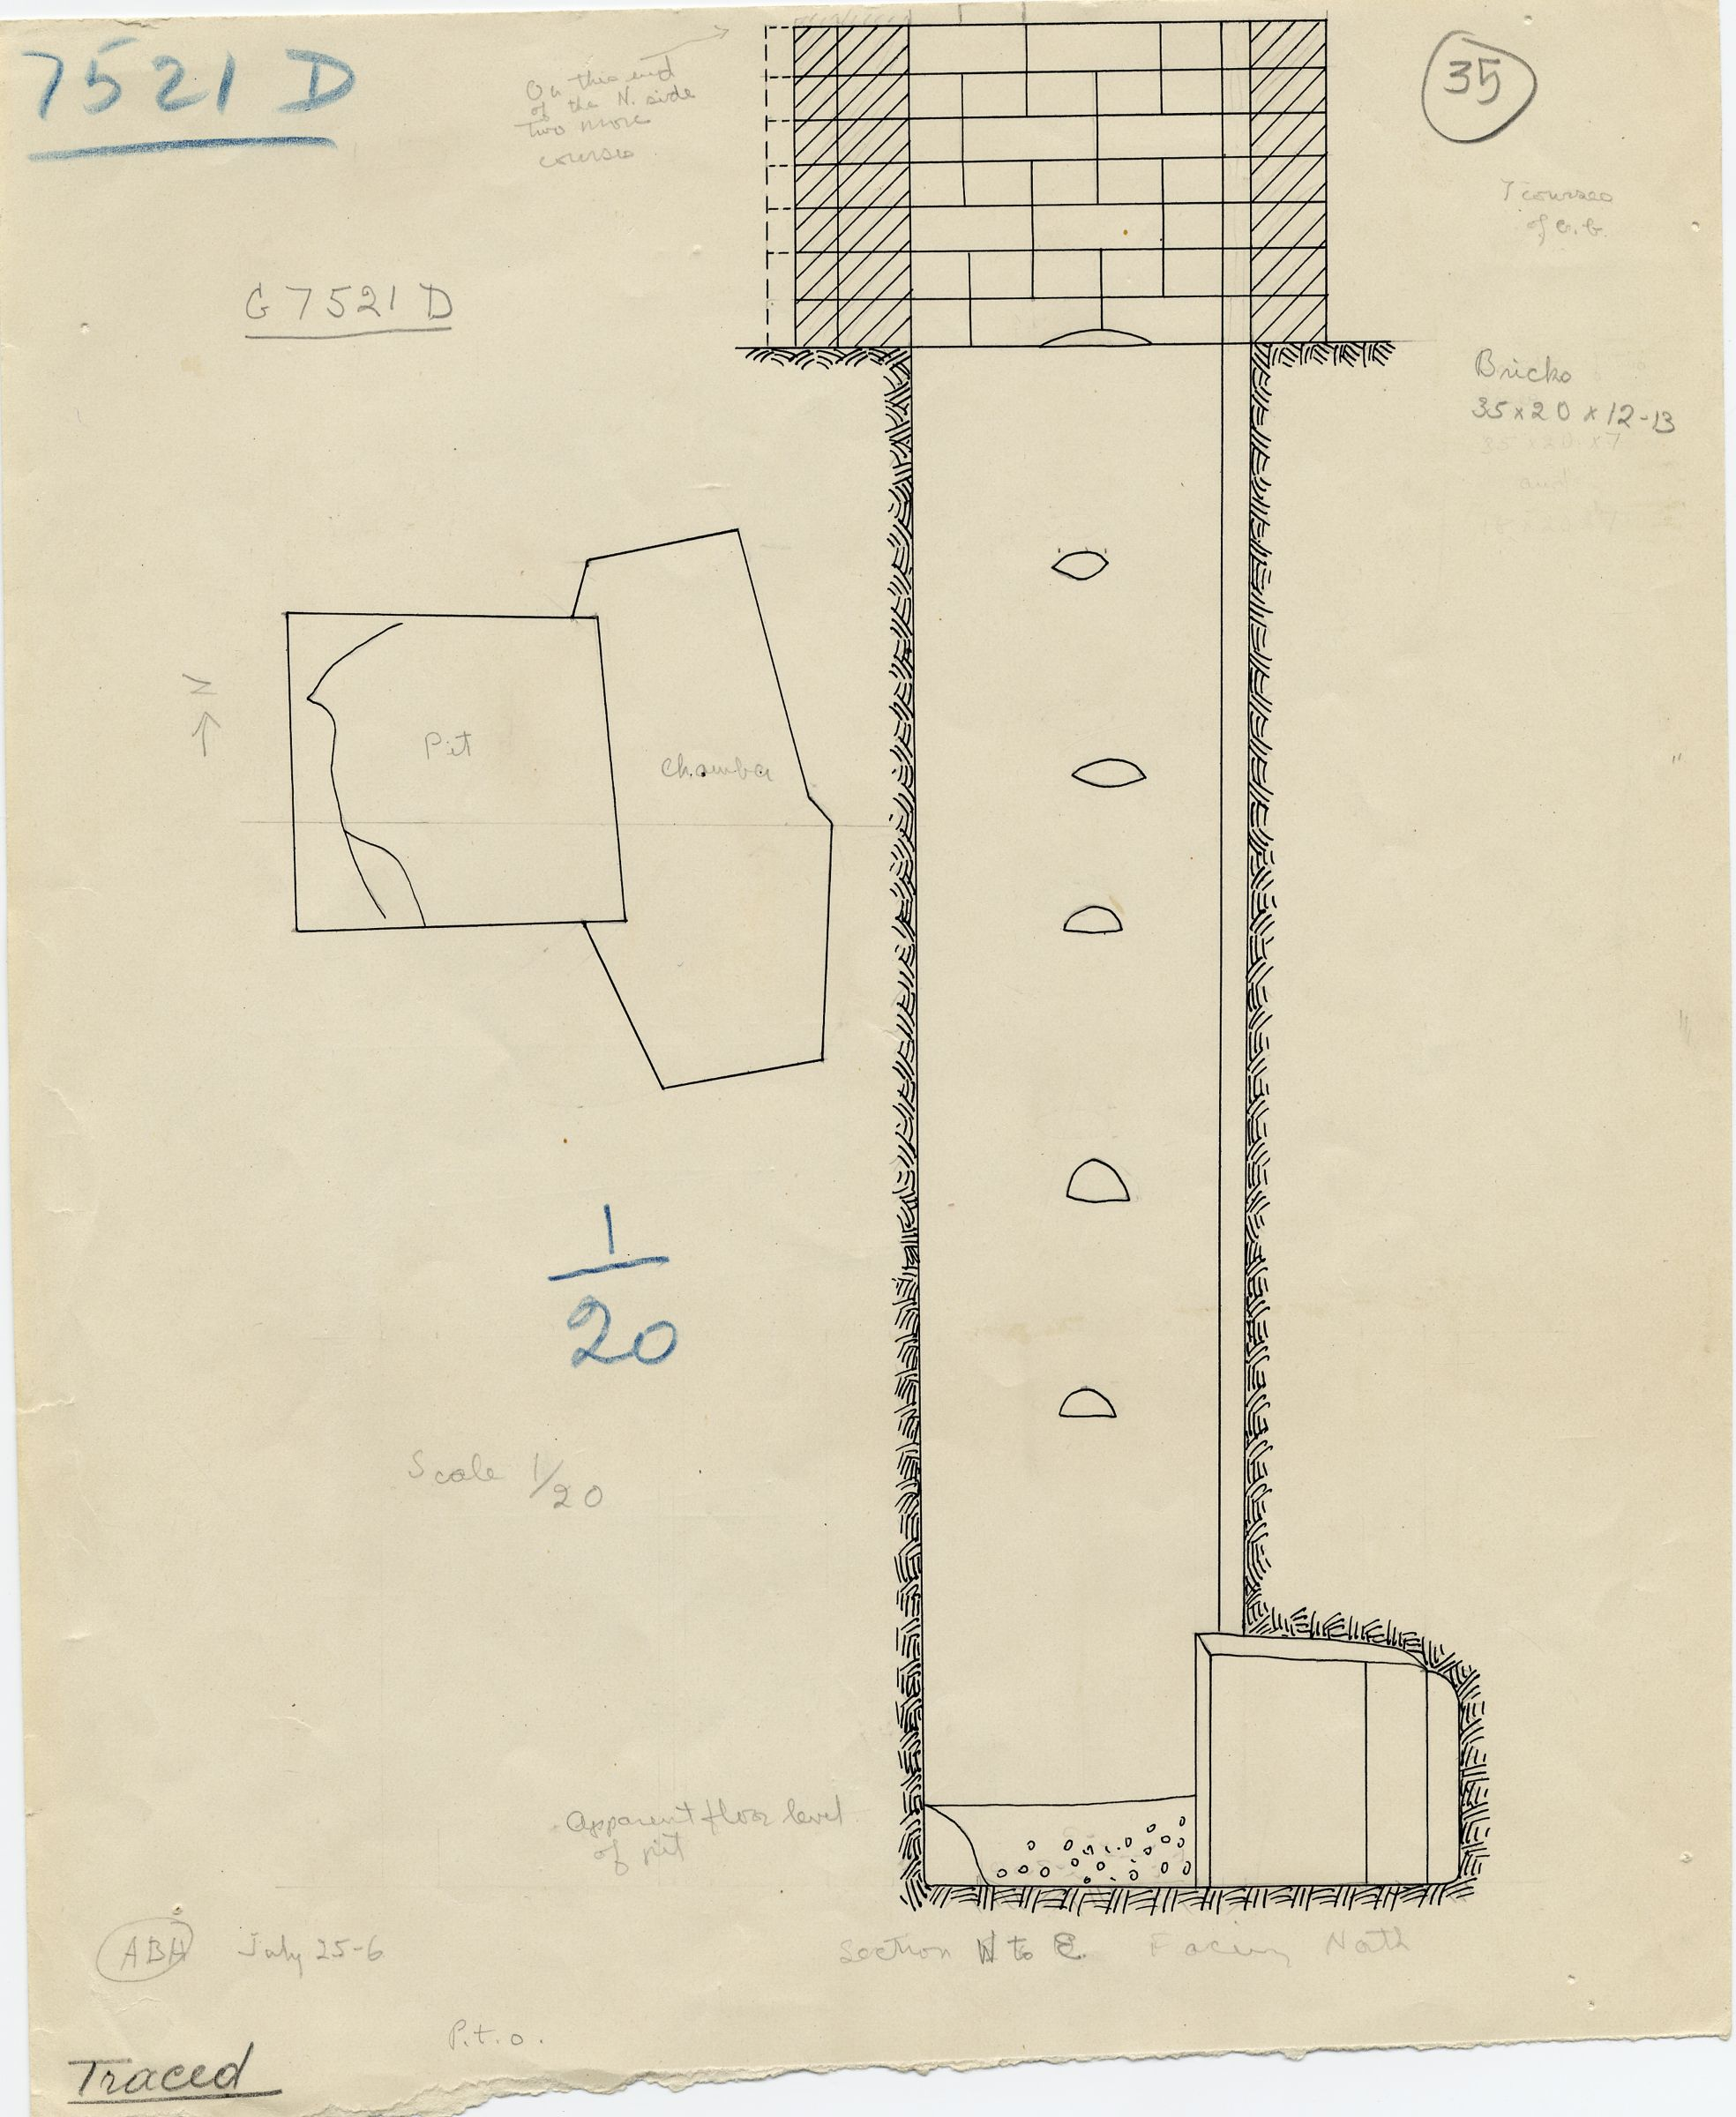 Maps and plans: G 7521, Shaft D